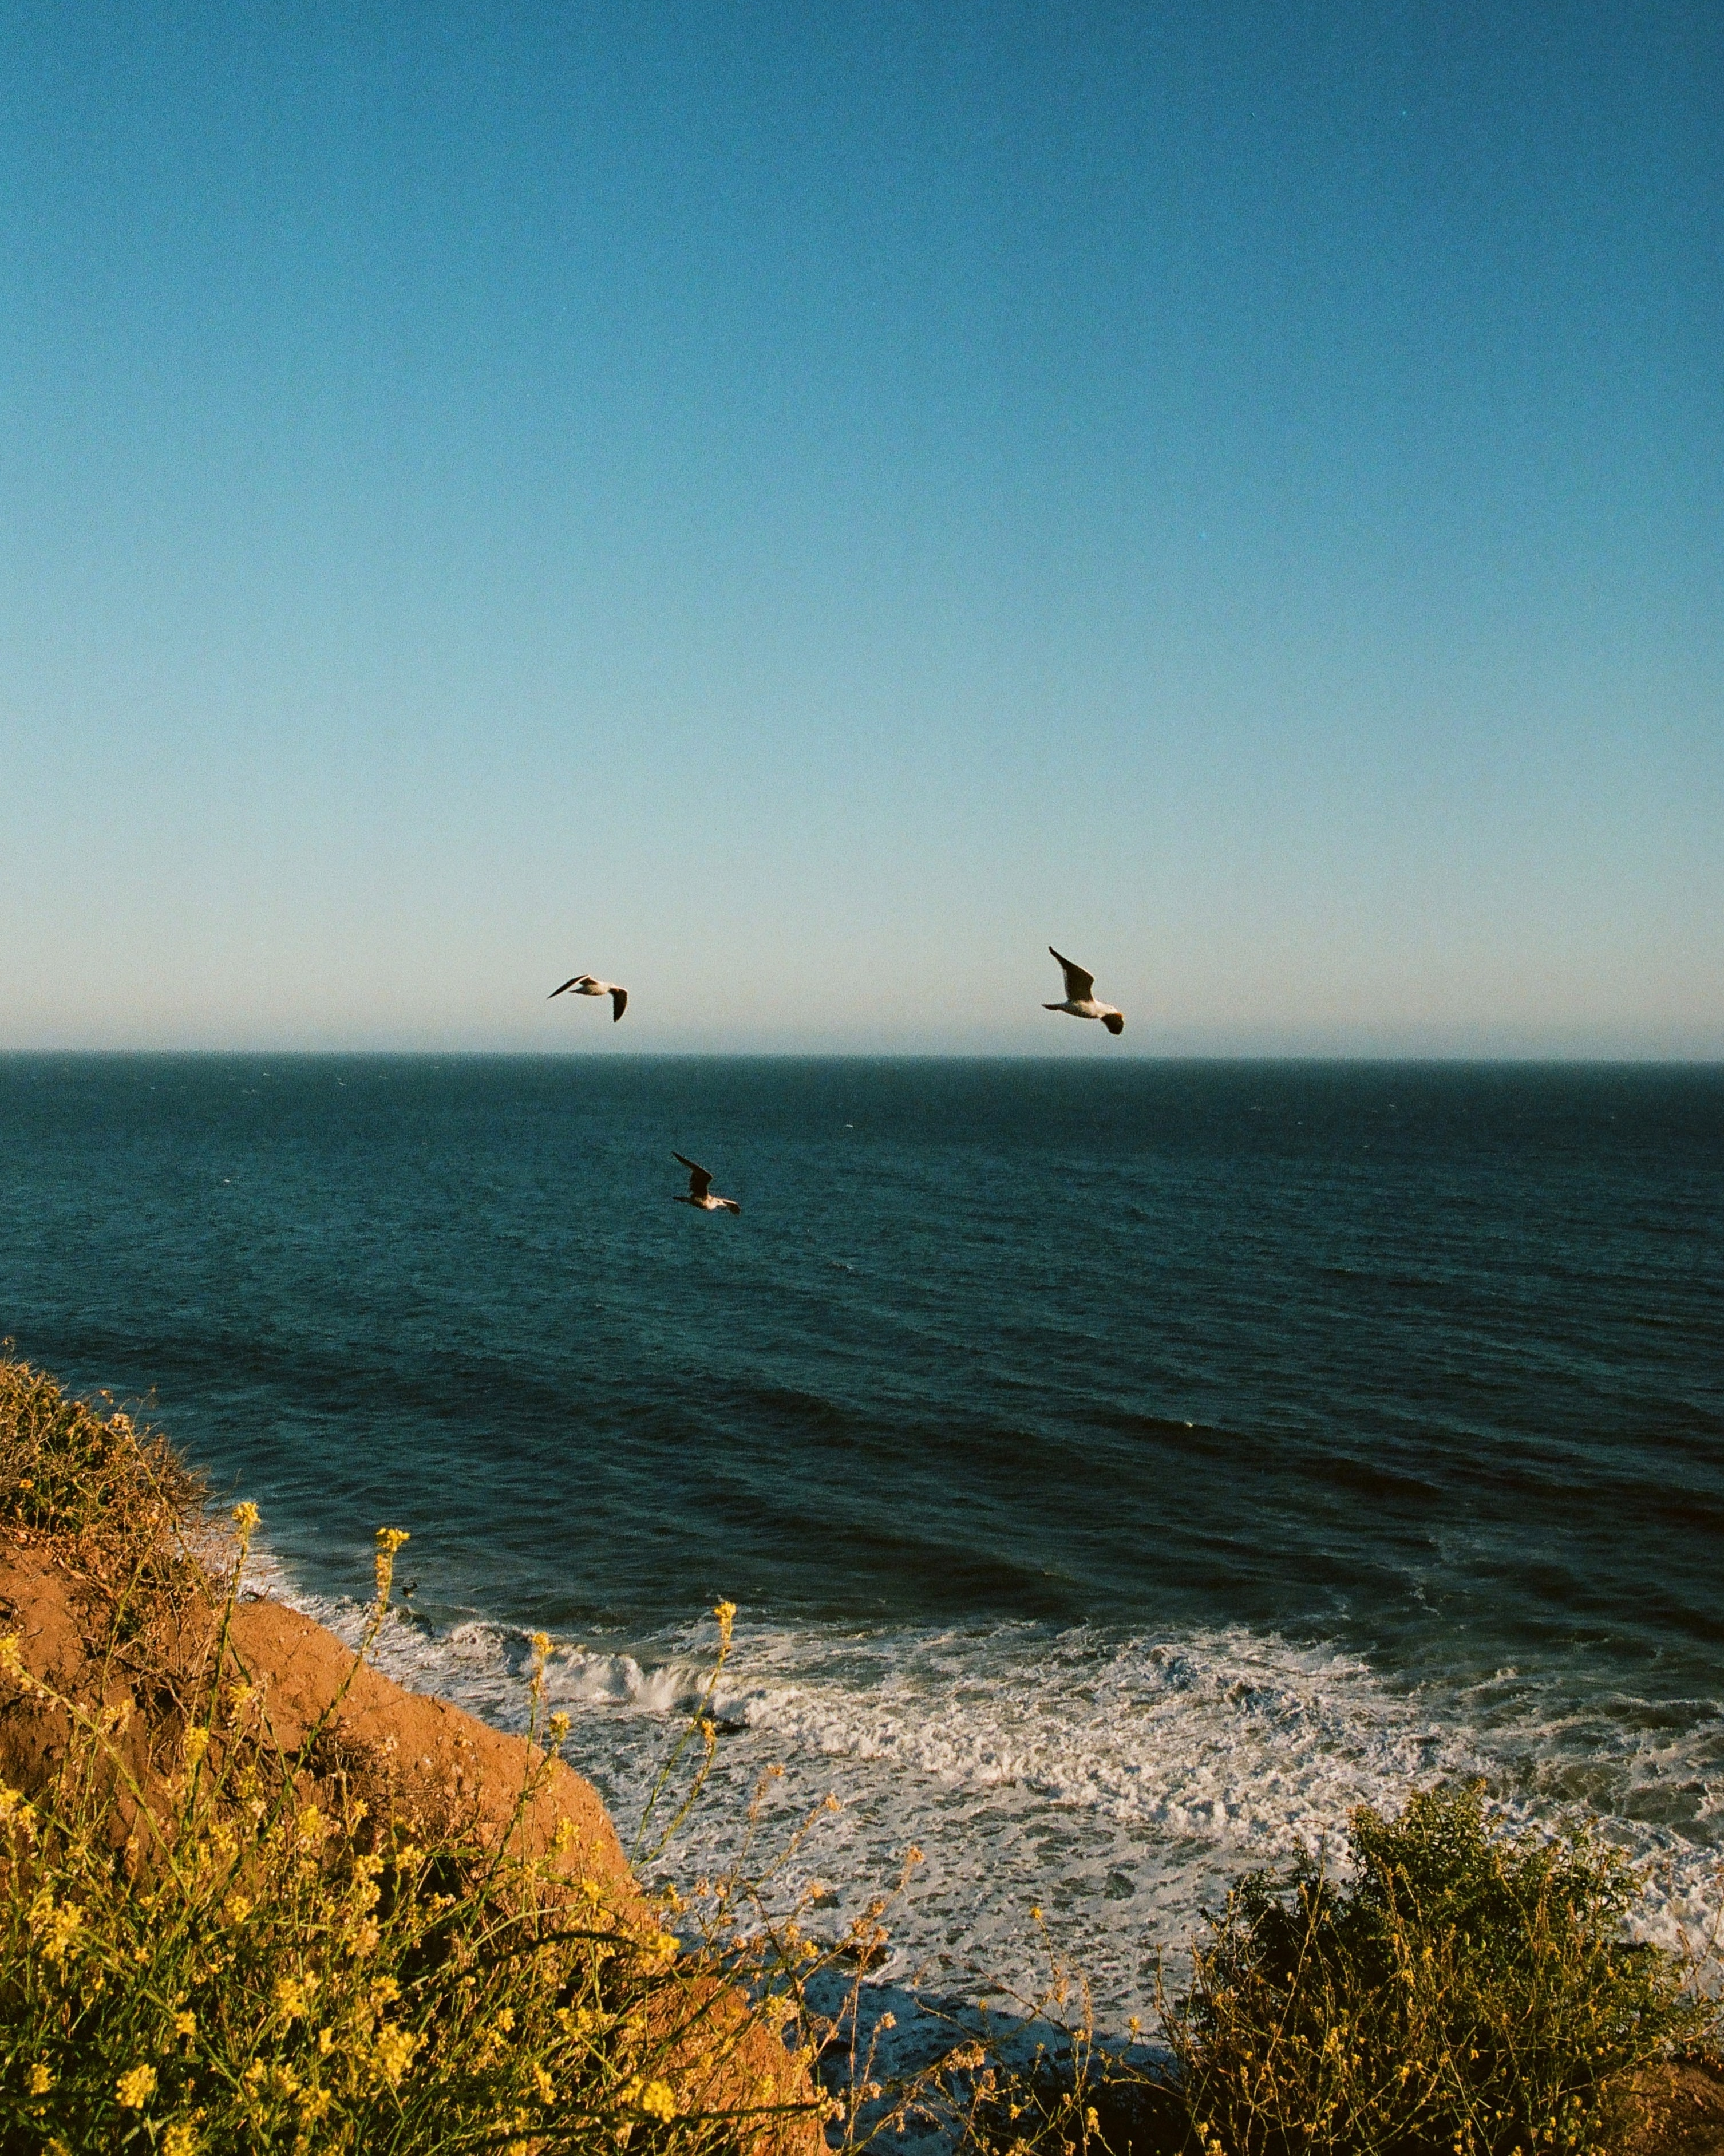 93204 download wallpaper Nature, Flowers, Birds, Sea, Seagulls, Waves screensavers and pictures for free